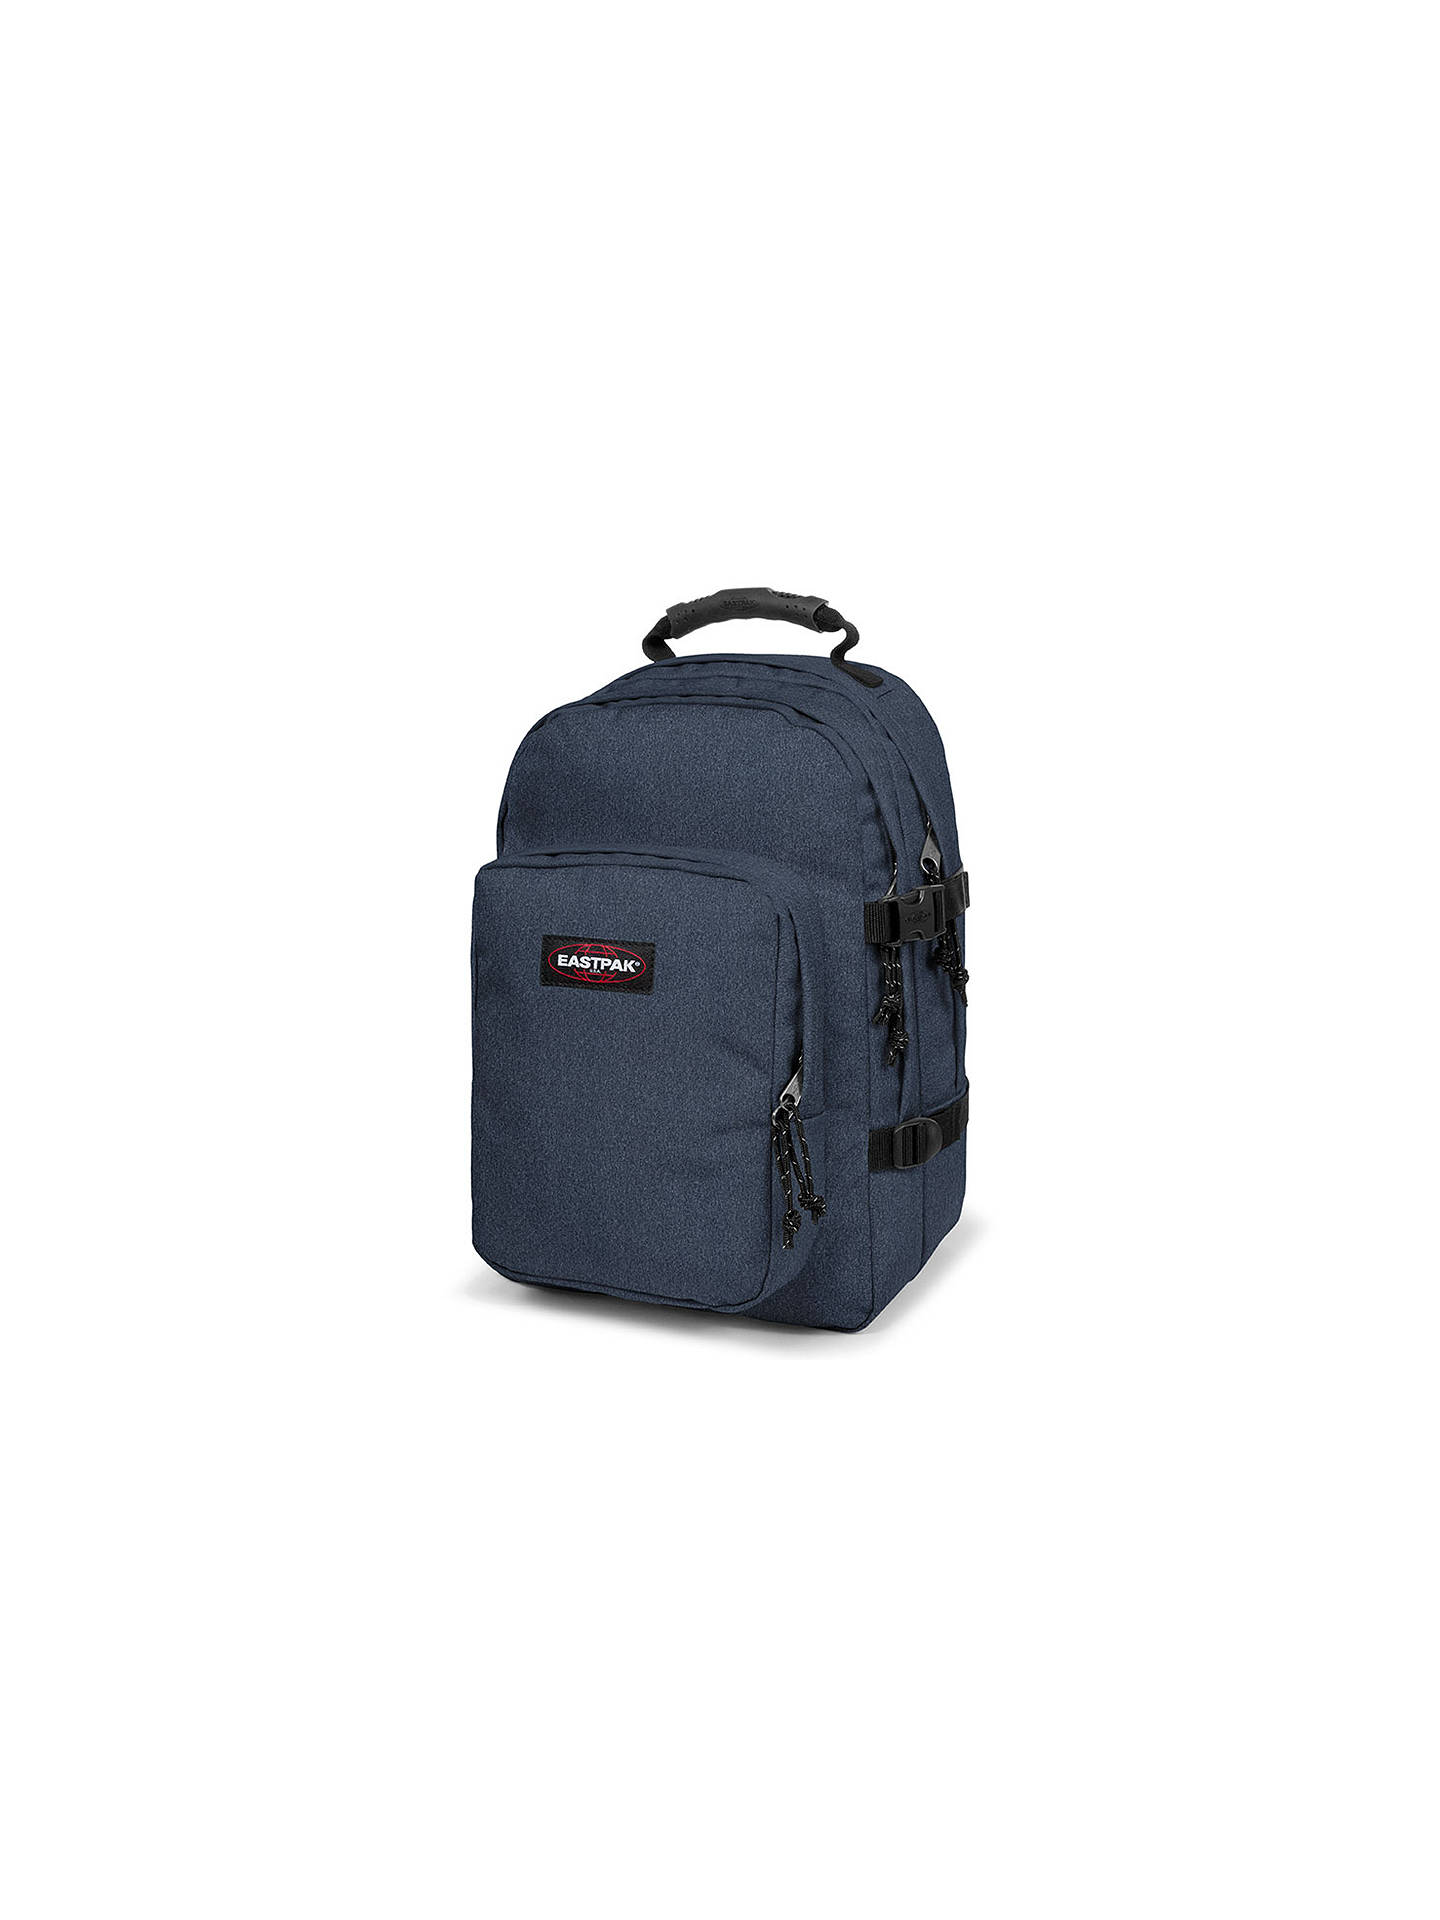 Eastpak Provider Laptop Backpack, Double Denim